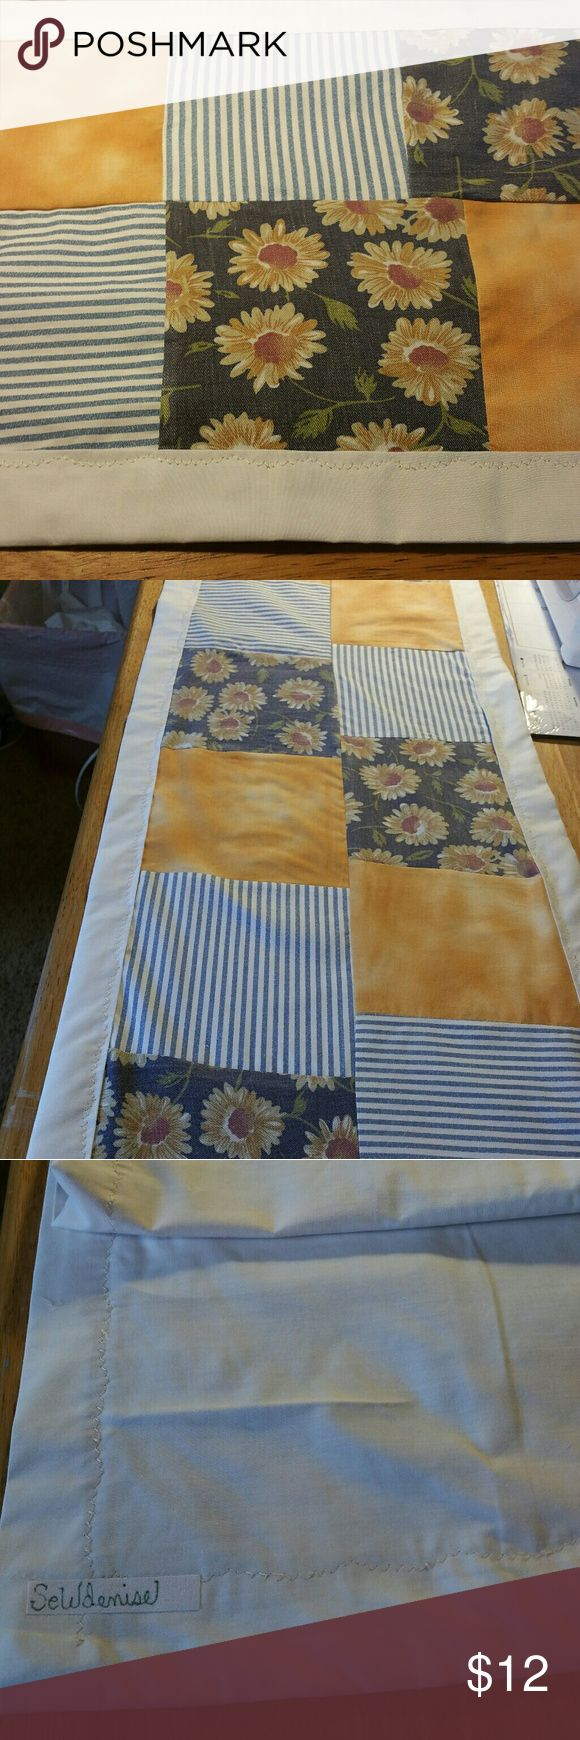 Table runner HANDMADE quilted 100% cotton coordinating fabrics Sewdenise Other